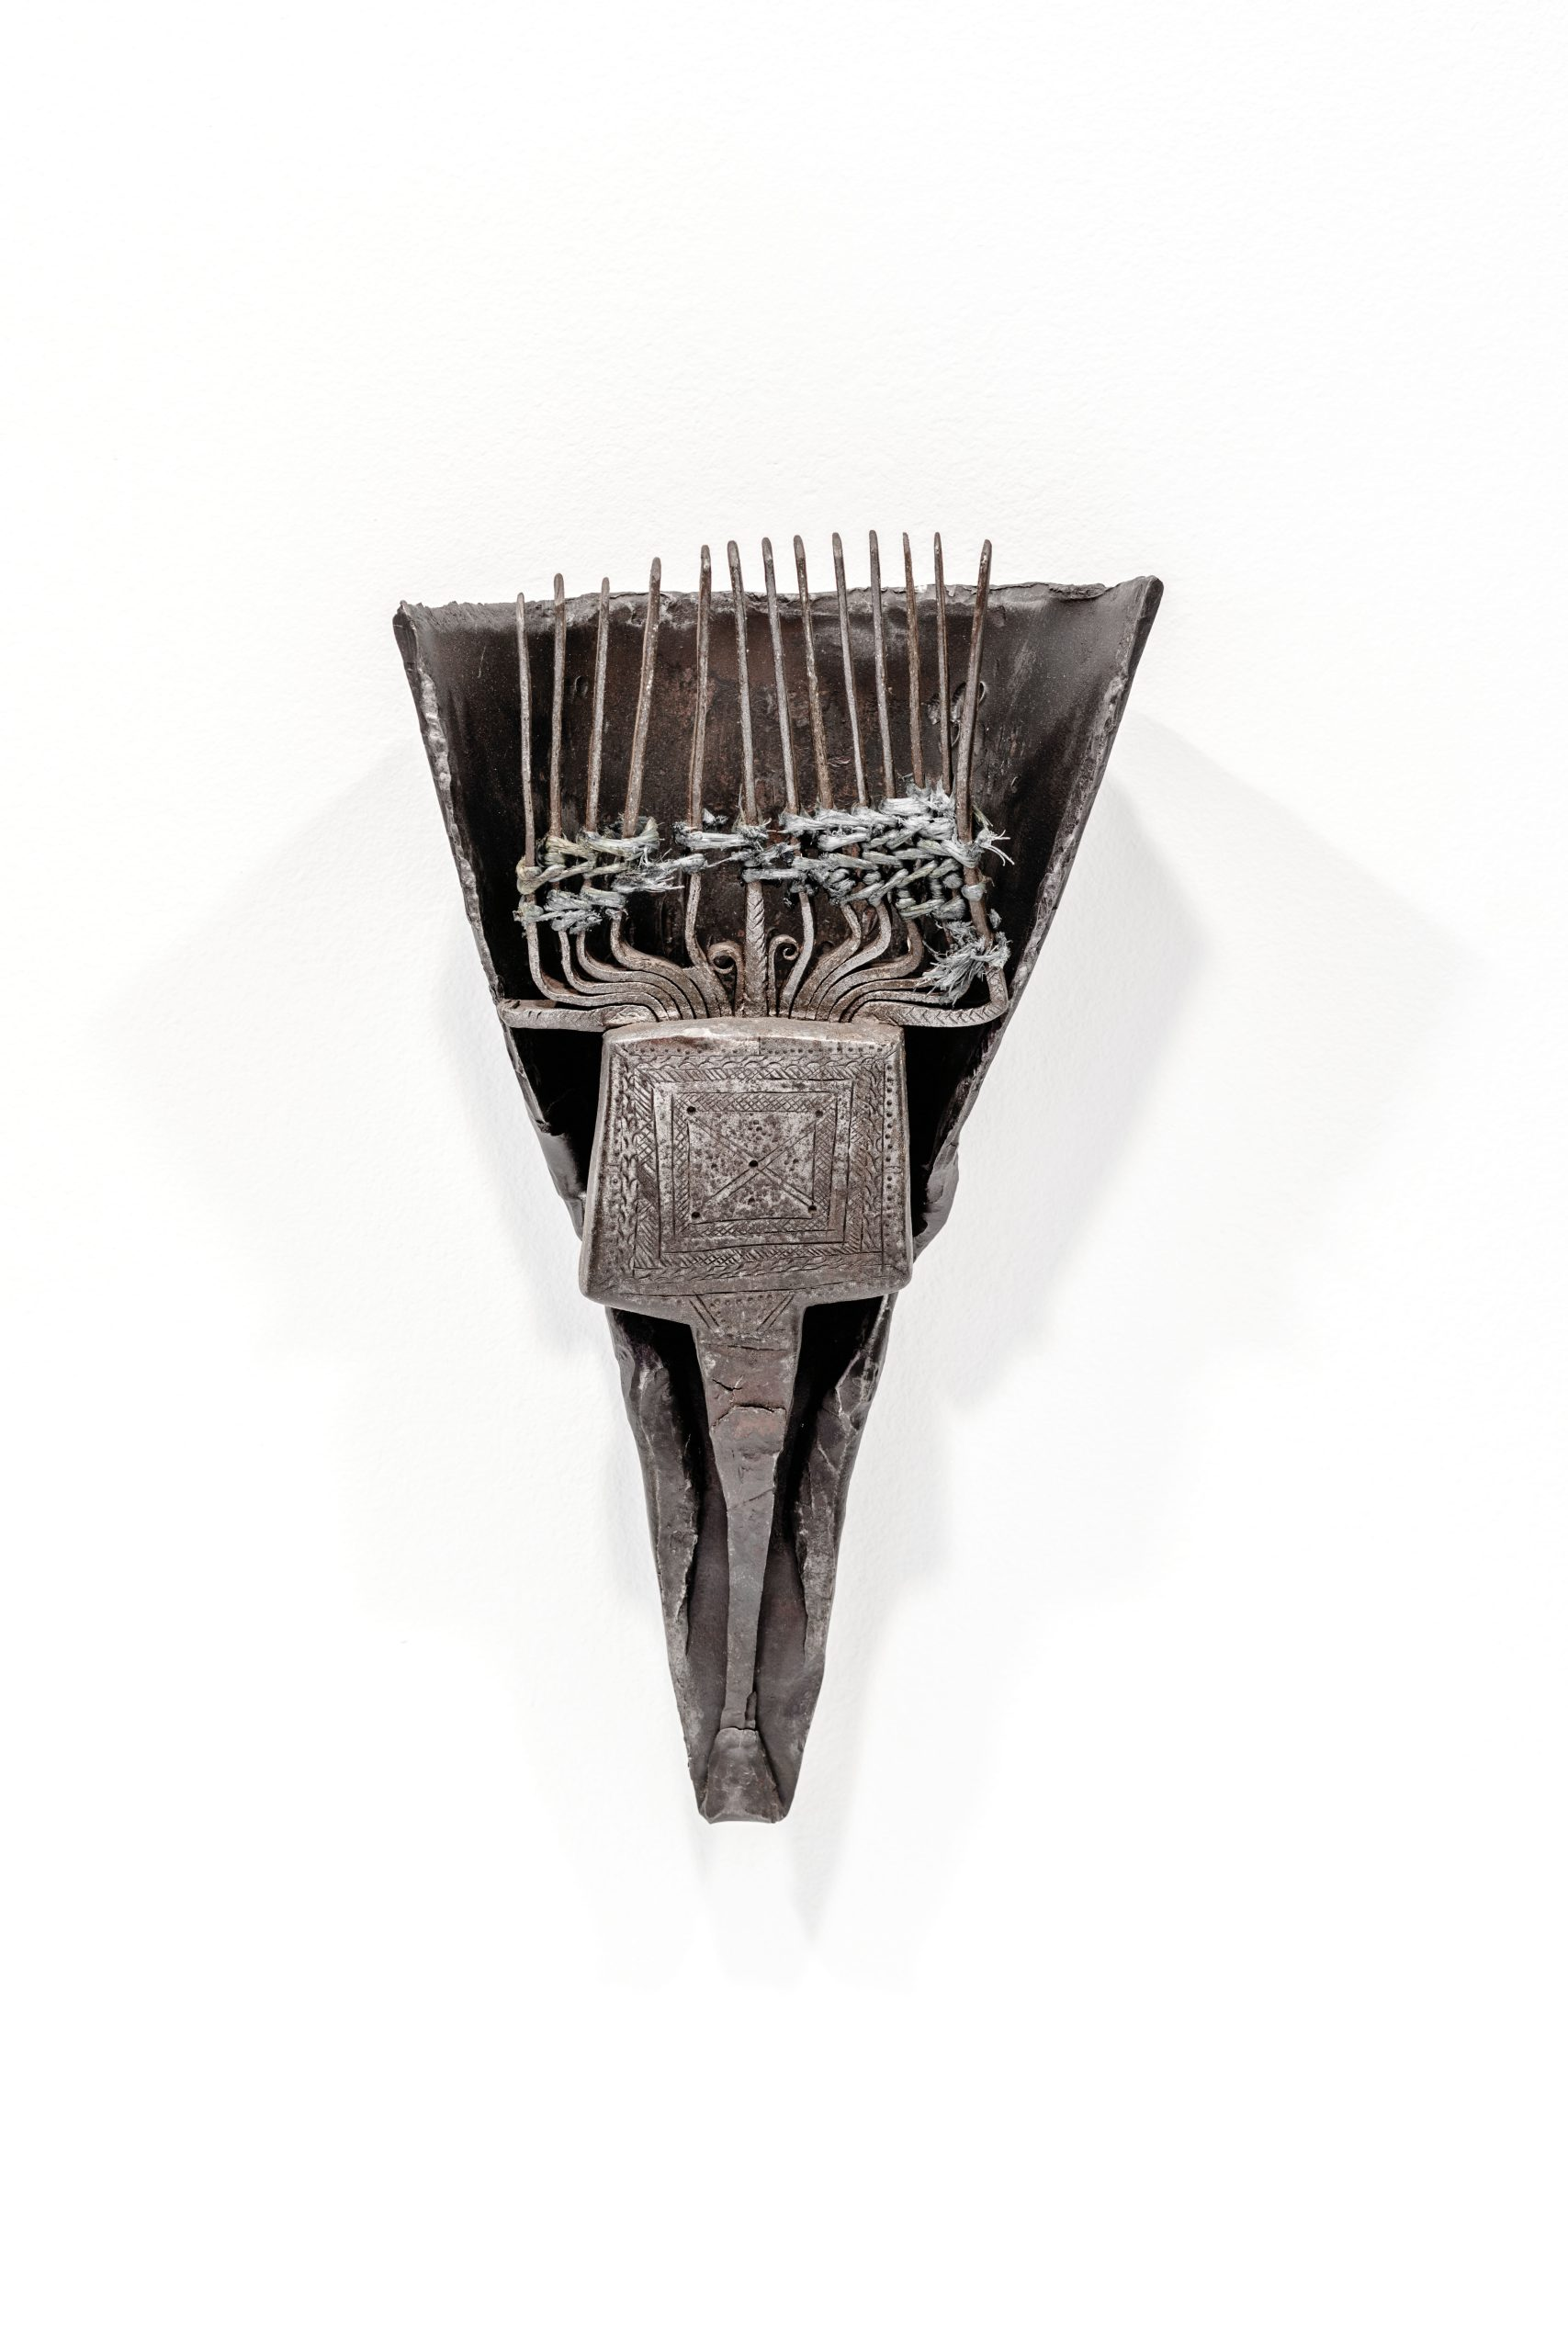 Ajdig #1, 2018, Assemblage, Forged and engraved metal